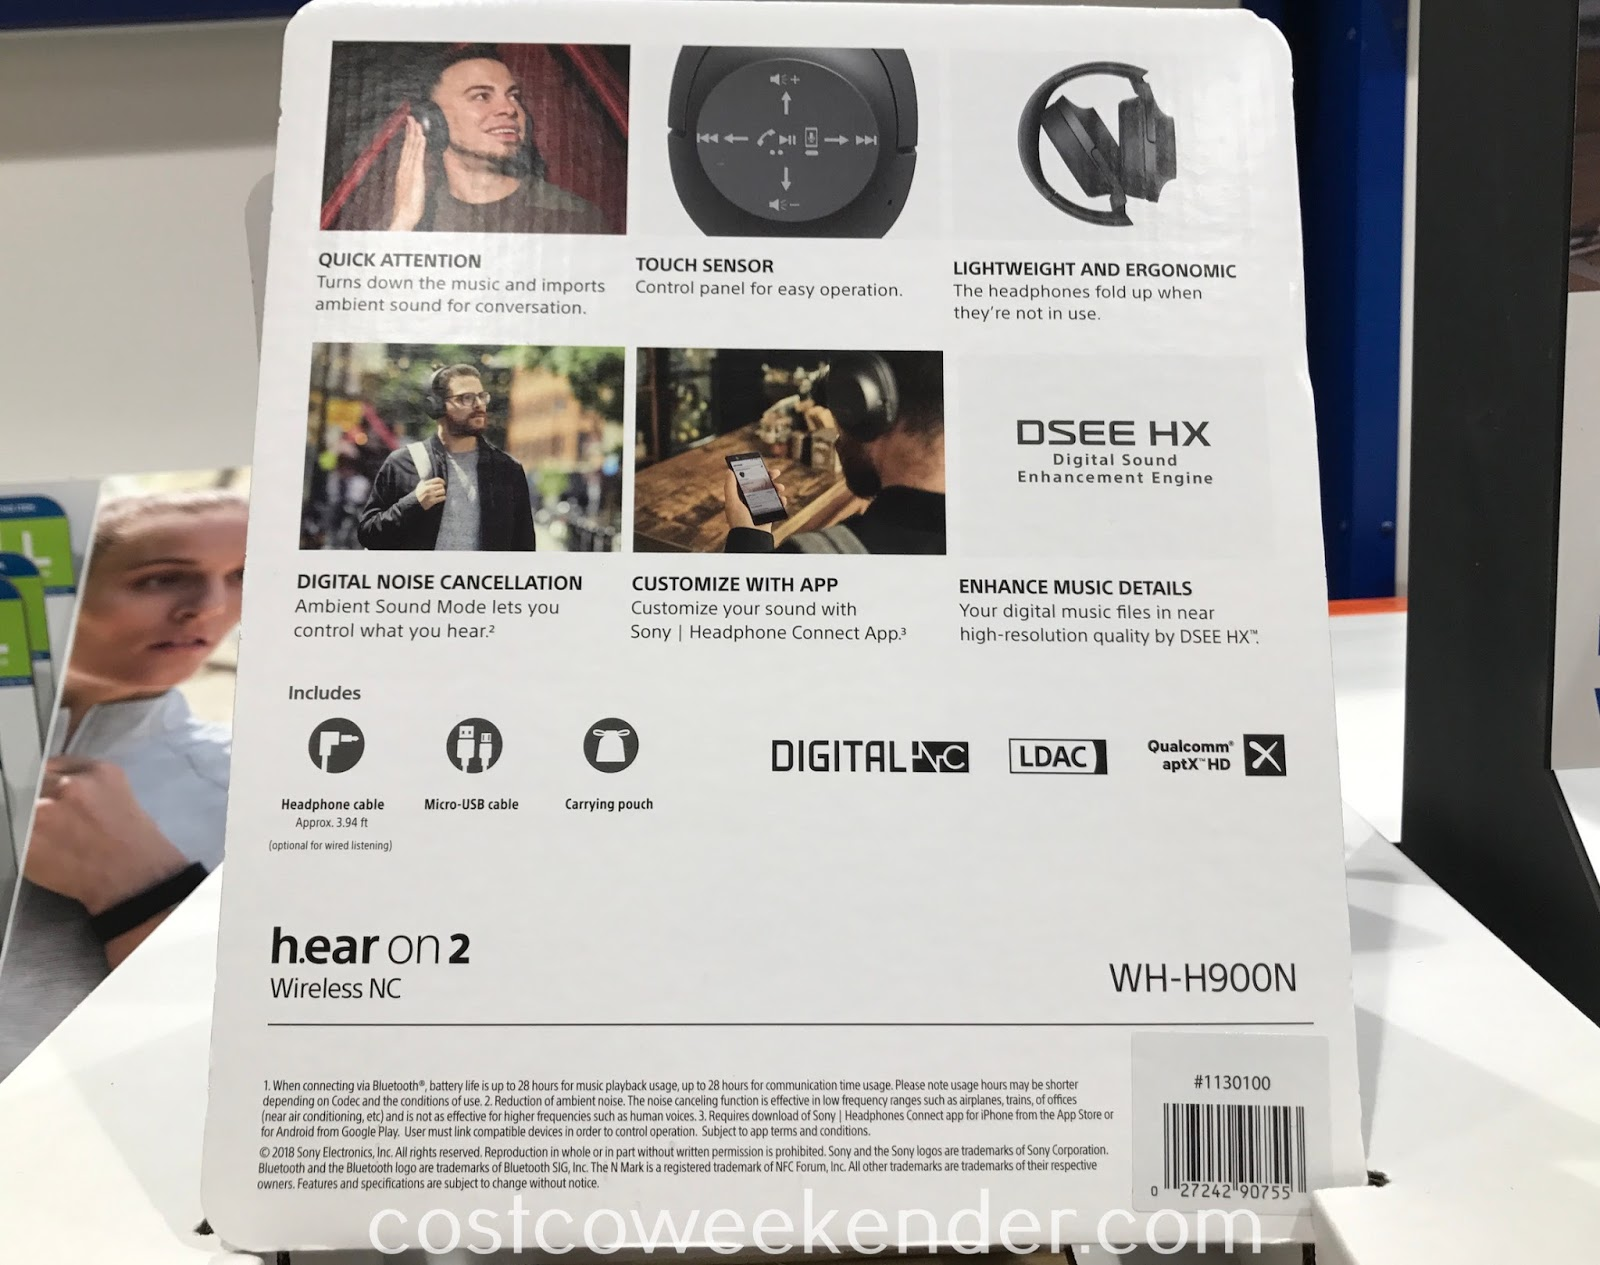 Sony h.ear on 2 Noise Canceling Wireless Headphones WH-H900N can connect wirelessly or with a cable